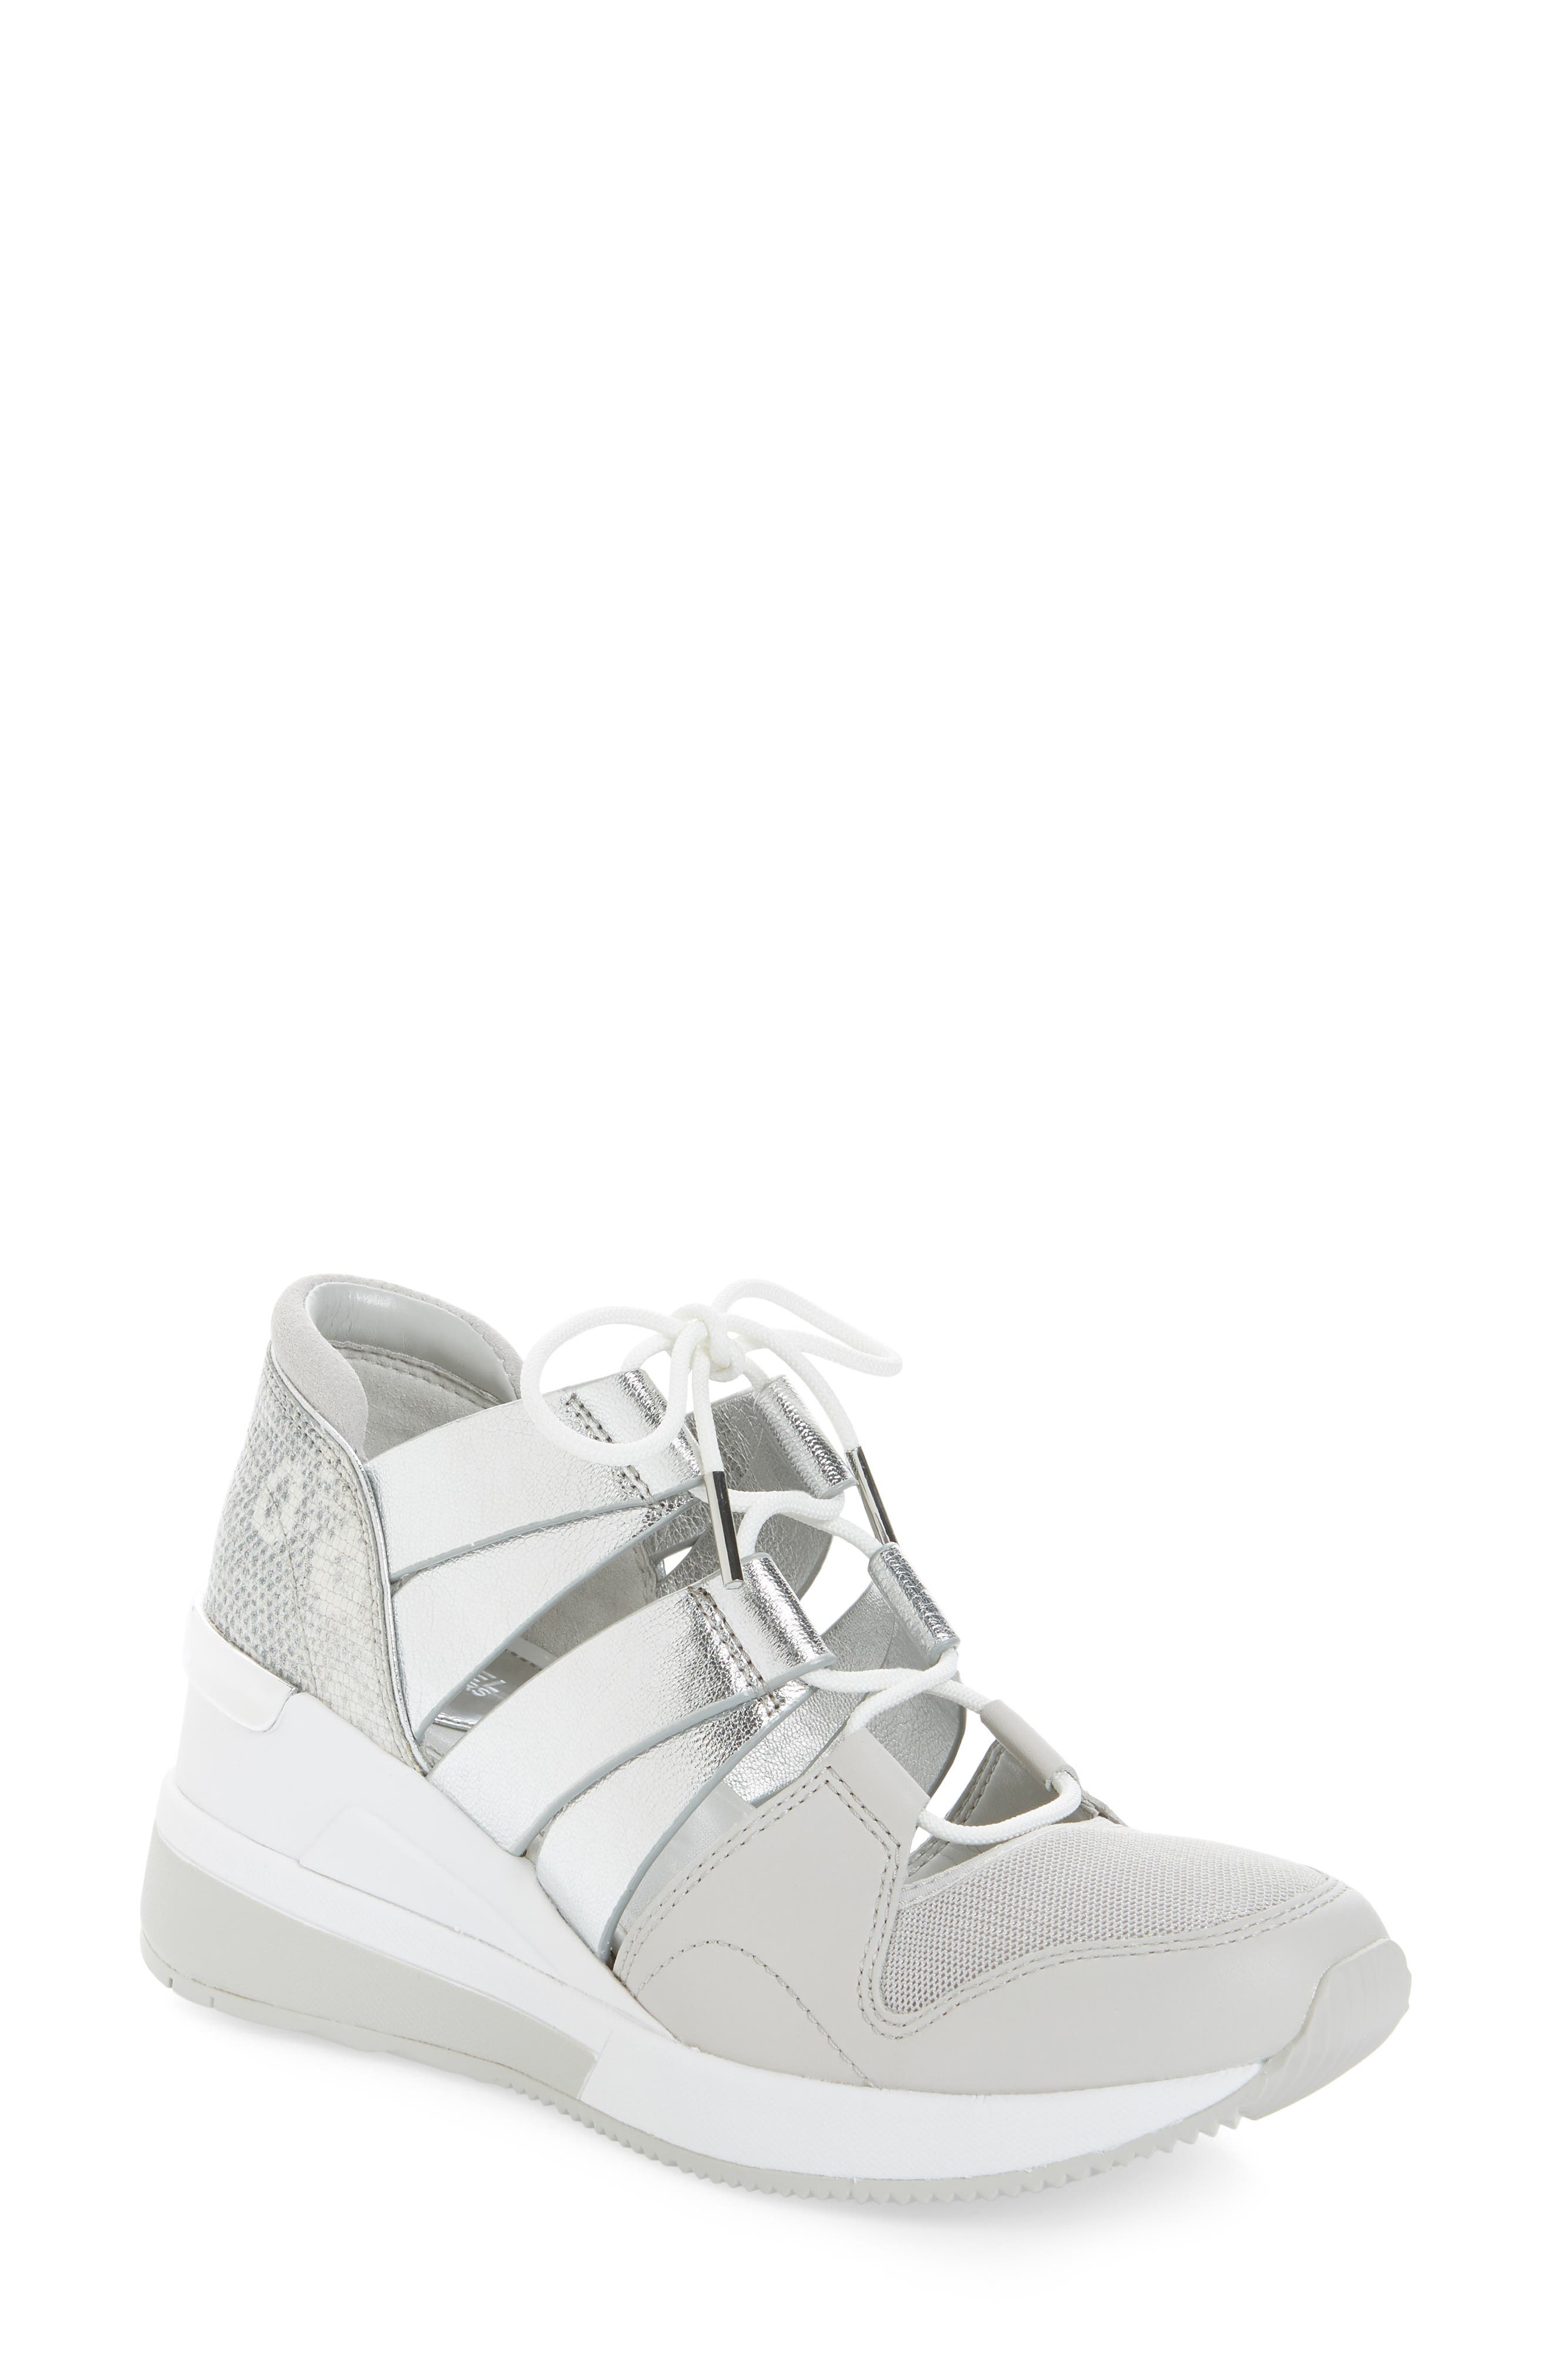 MICHAEL MICHAEL KORS,                             Beckett Sneaker,                             Main thumbnail 1, color,                             040